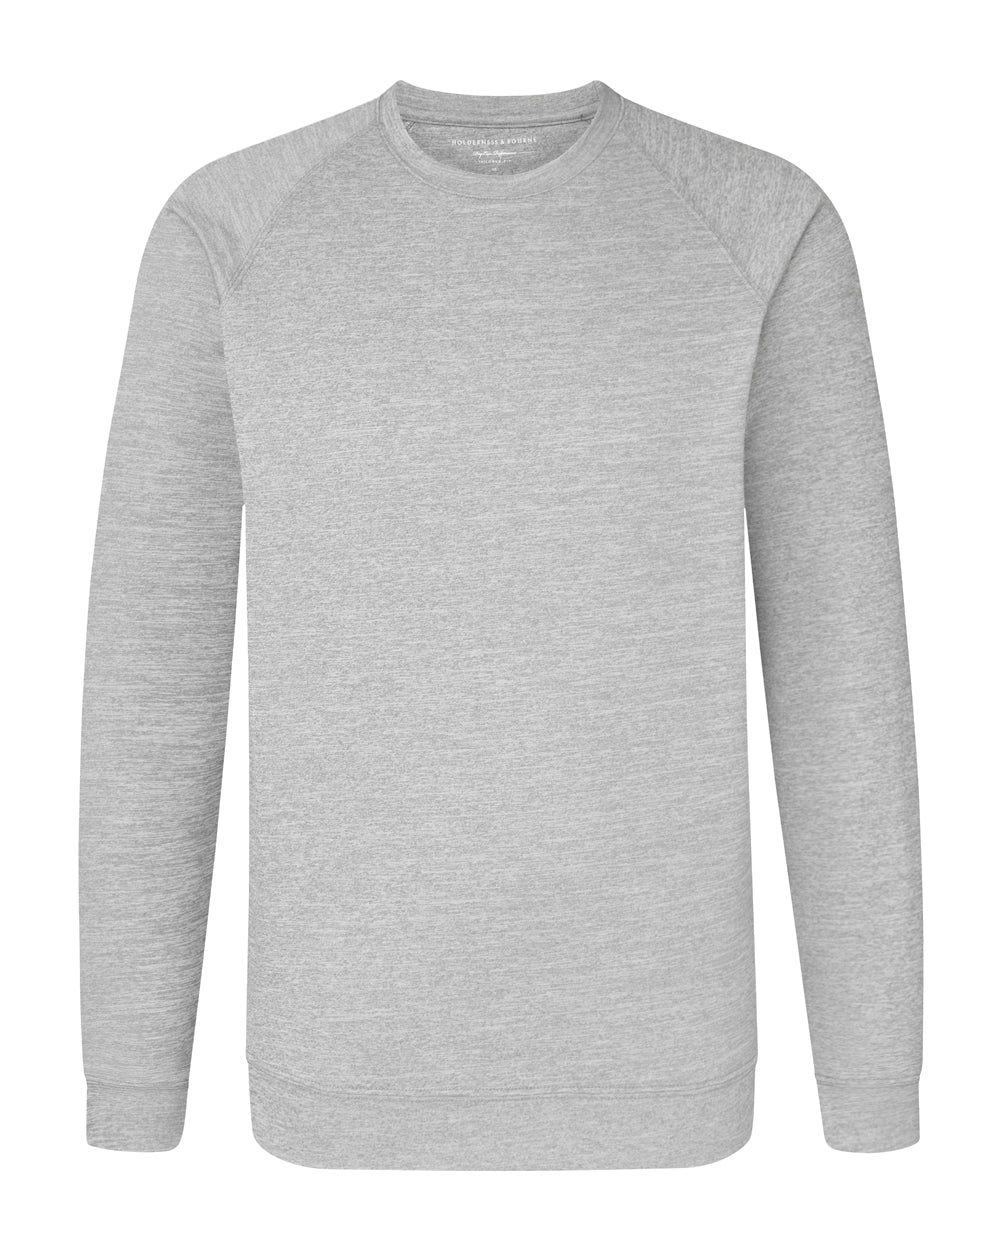 NLU + H&B Crewneck | Gray (S, XL left)